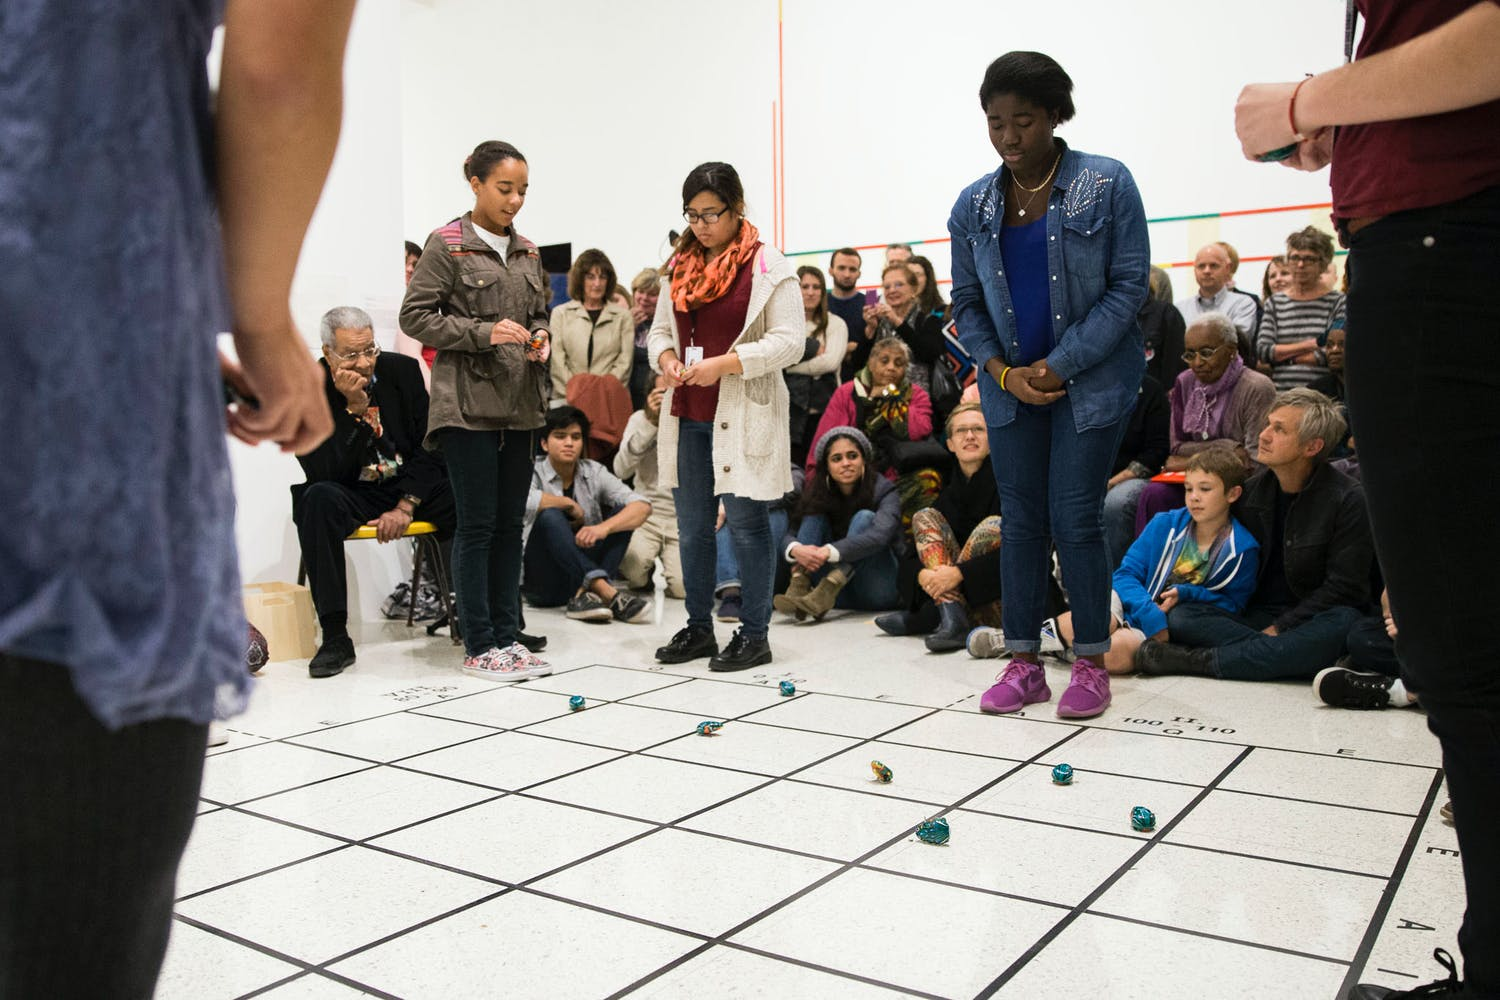 Benjamin Patterson, Pond, 1962; part of the exhibition Radical Presence: Black Performance in Contemporary Art, 2014